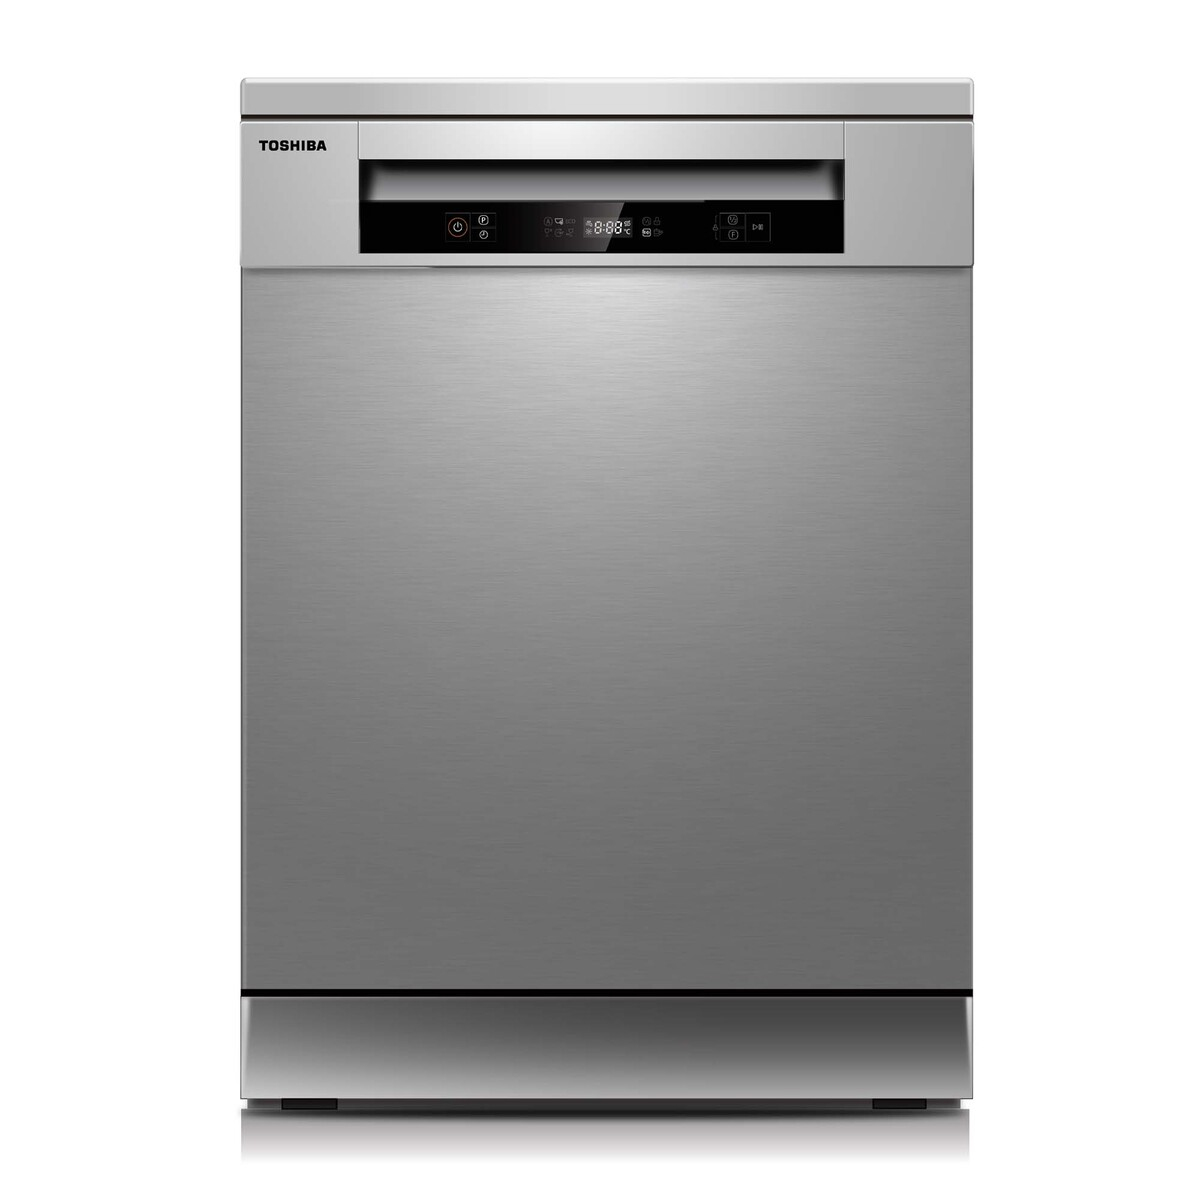 Toshiba 6 Programs 14 Place Settings Free Standing Dishwasher Silver DW14F1S